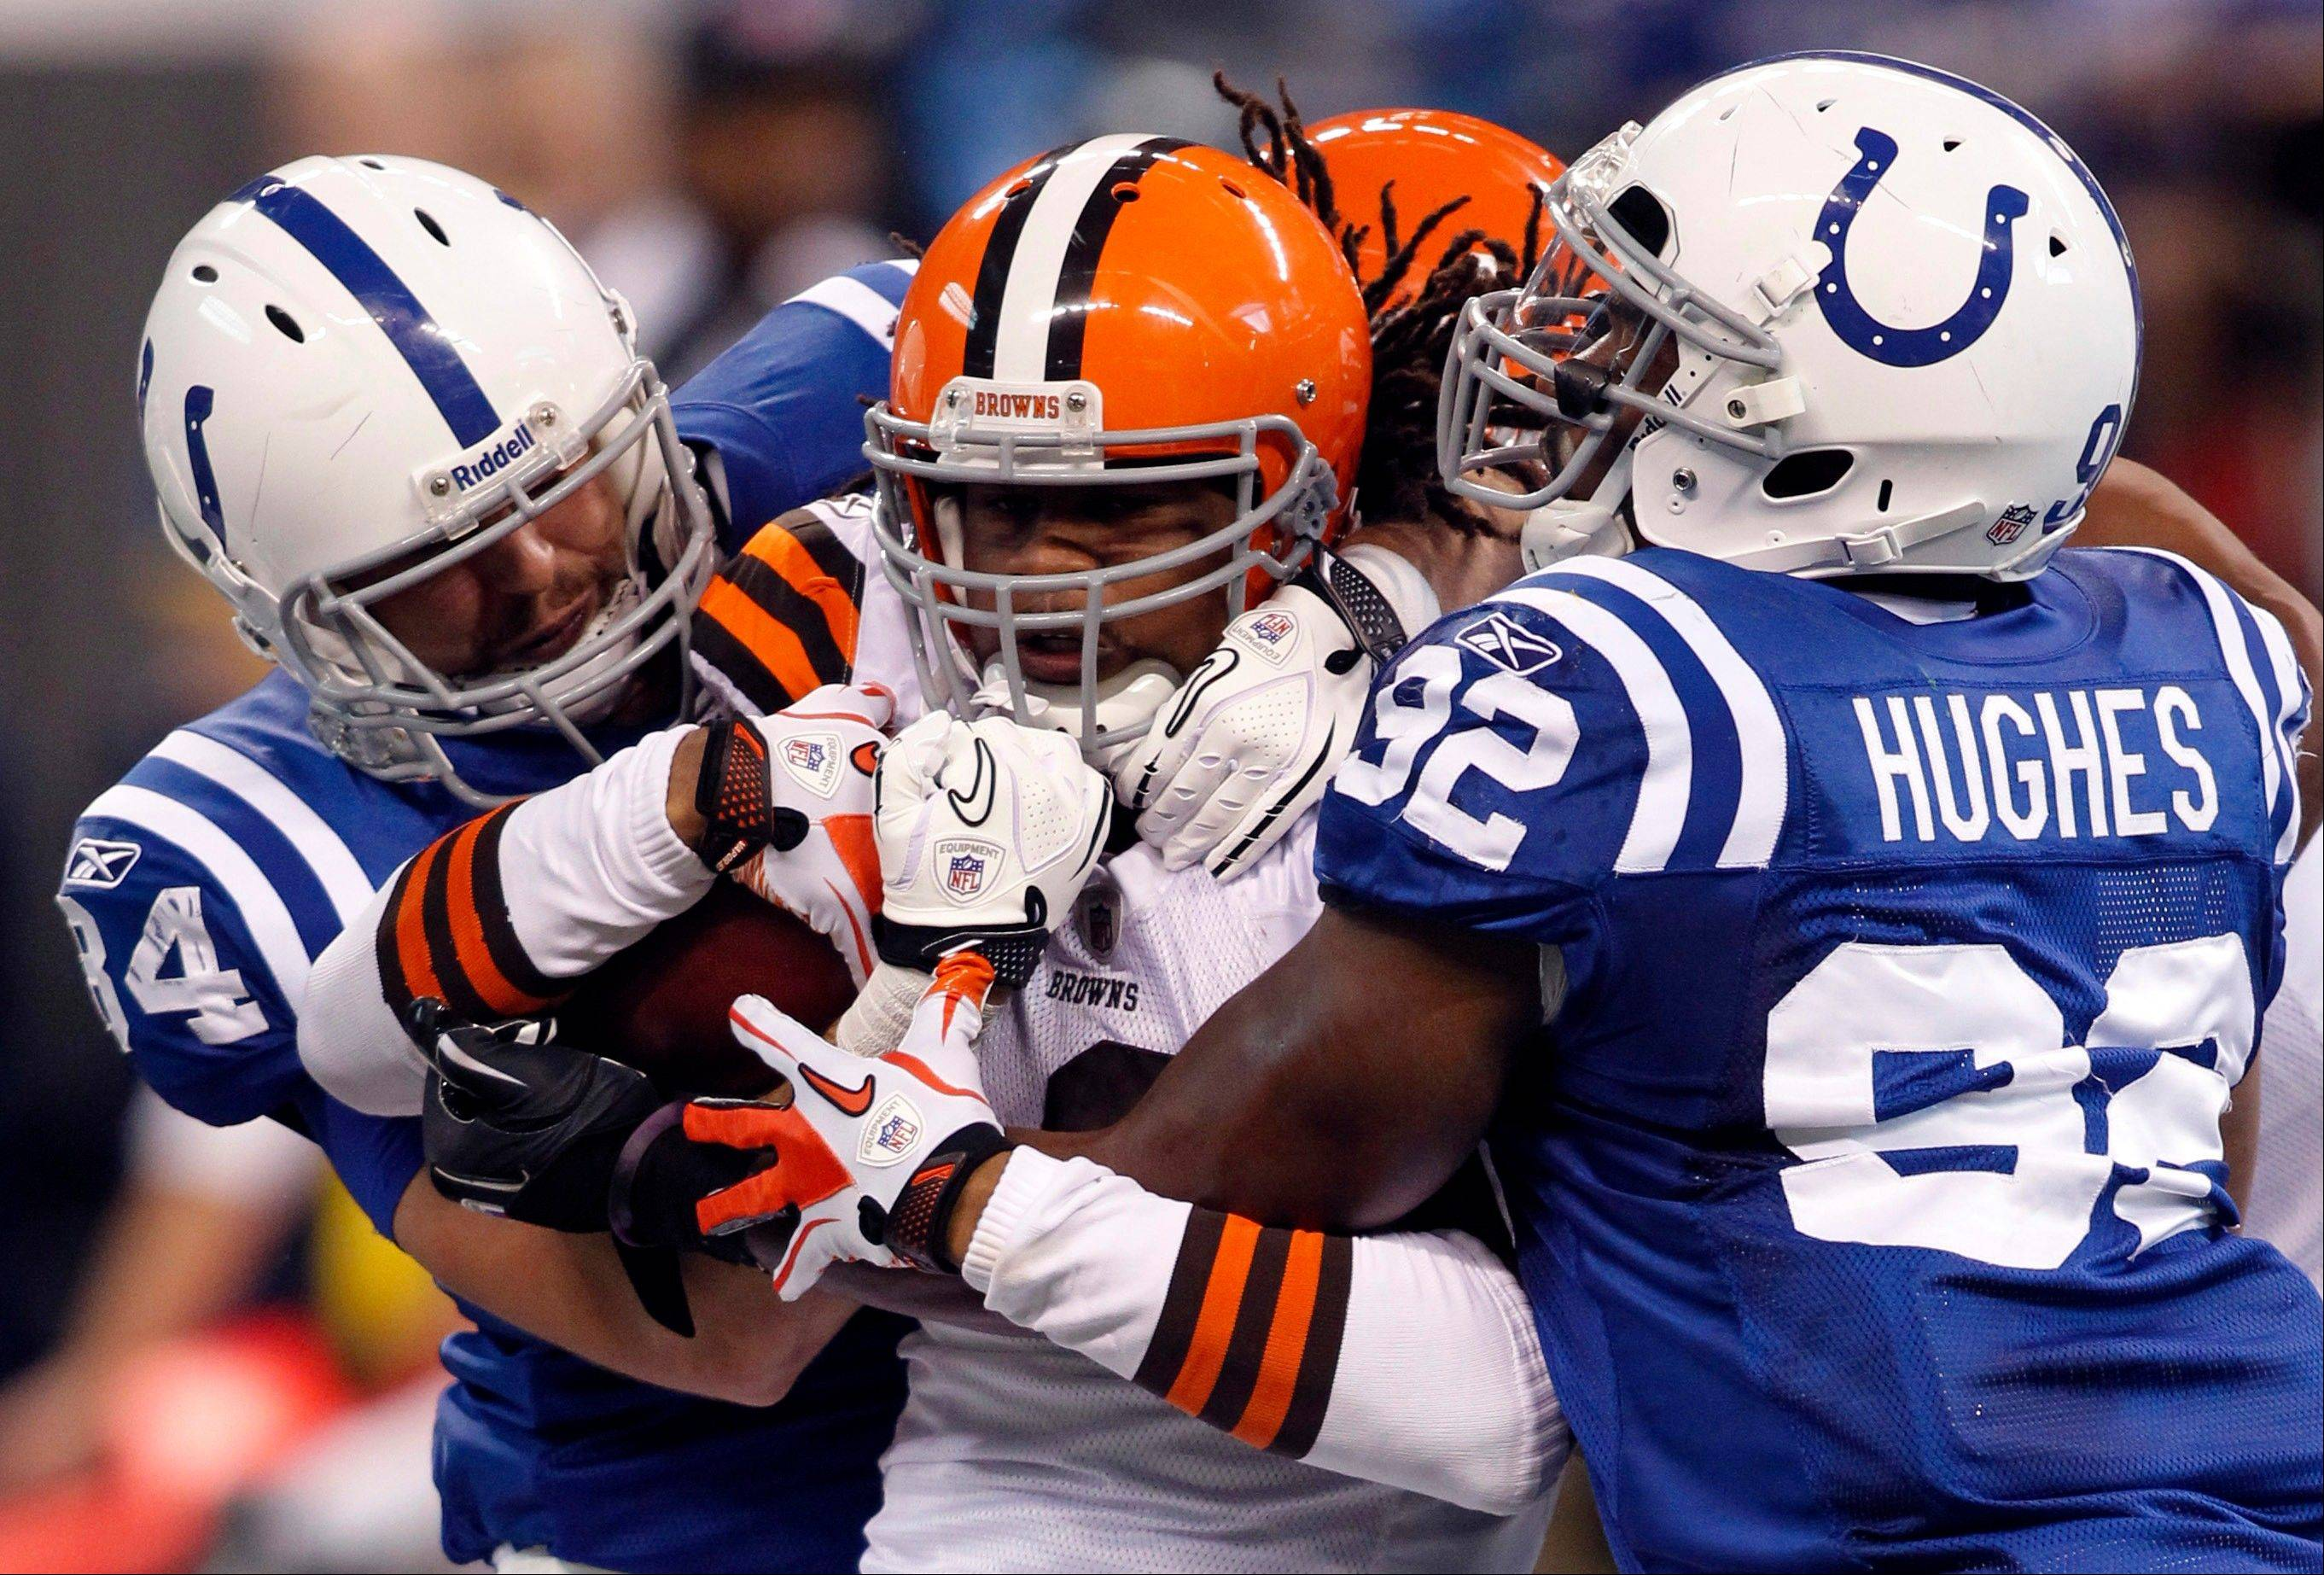 Cleveland Browns wide receiver Josh Cribbs, center, is tackled by Indianapolis Colts� Jerry Hughes, right, and Jacob Tamme on a kickoff-return in the third quarter Sunday.